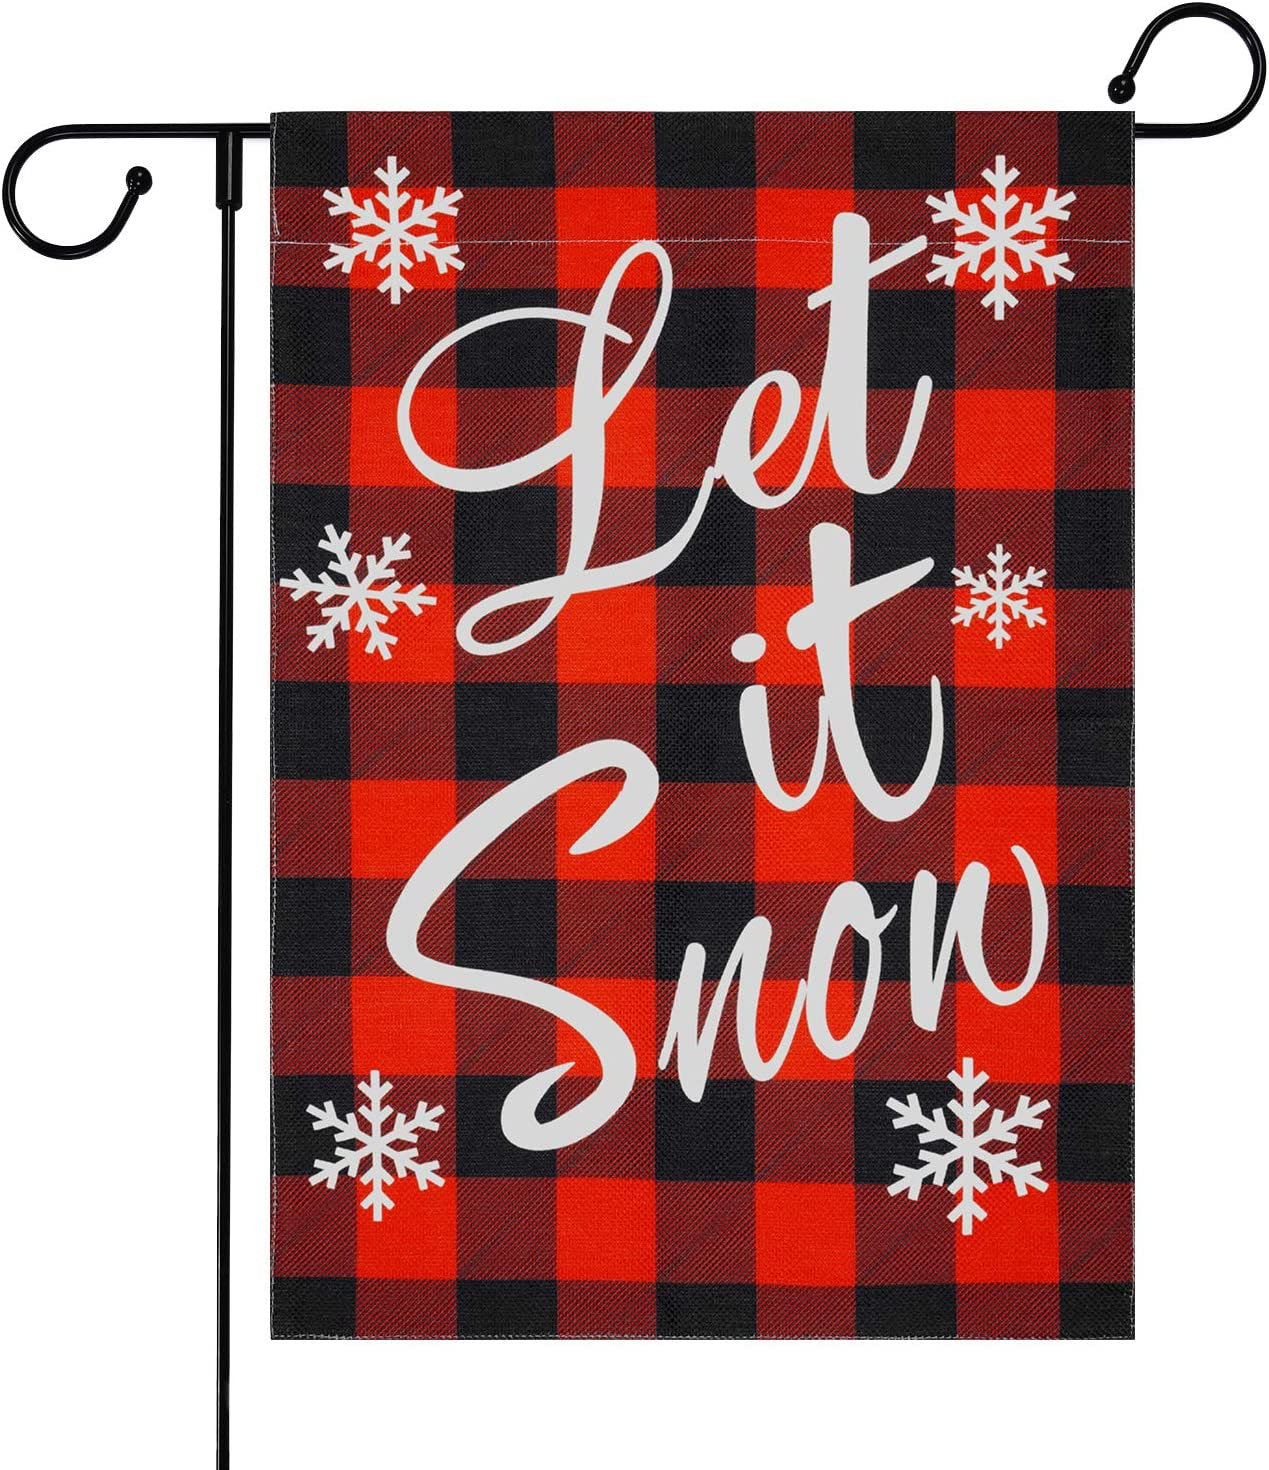 Red Buffalo Plaid Garden Flag, Snowflake Garden Flags with Free Anti-Wind Clip, Let It Snow Yard Flags, Decorative House Flags for Outside, Winter Garden Flags Burlap Double Sided, 12.5 x 18 inches